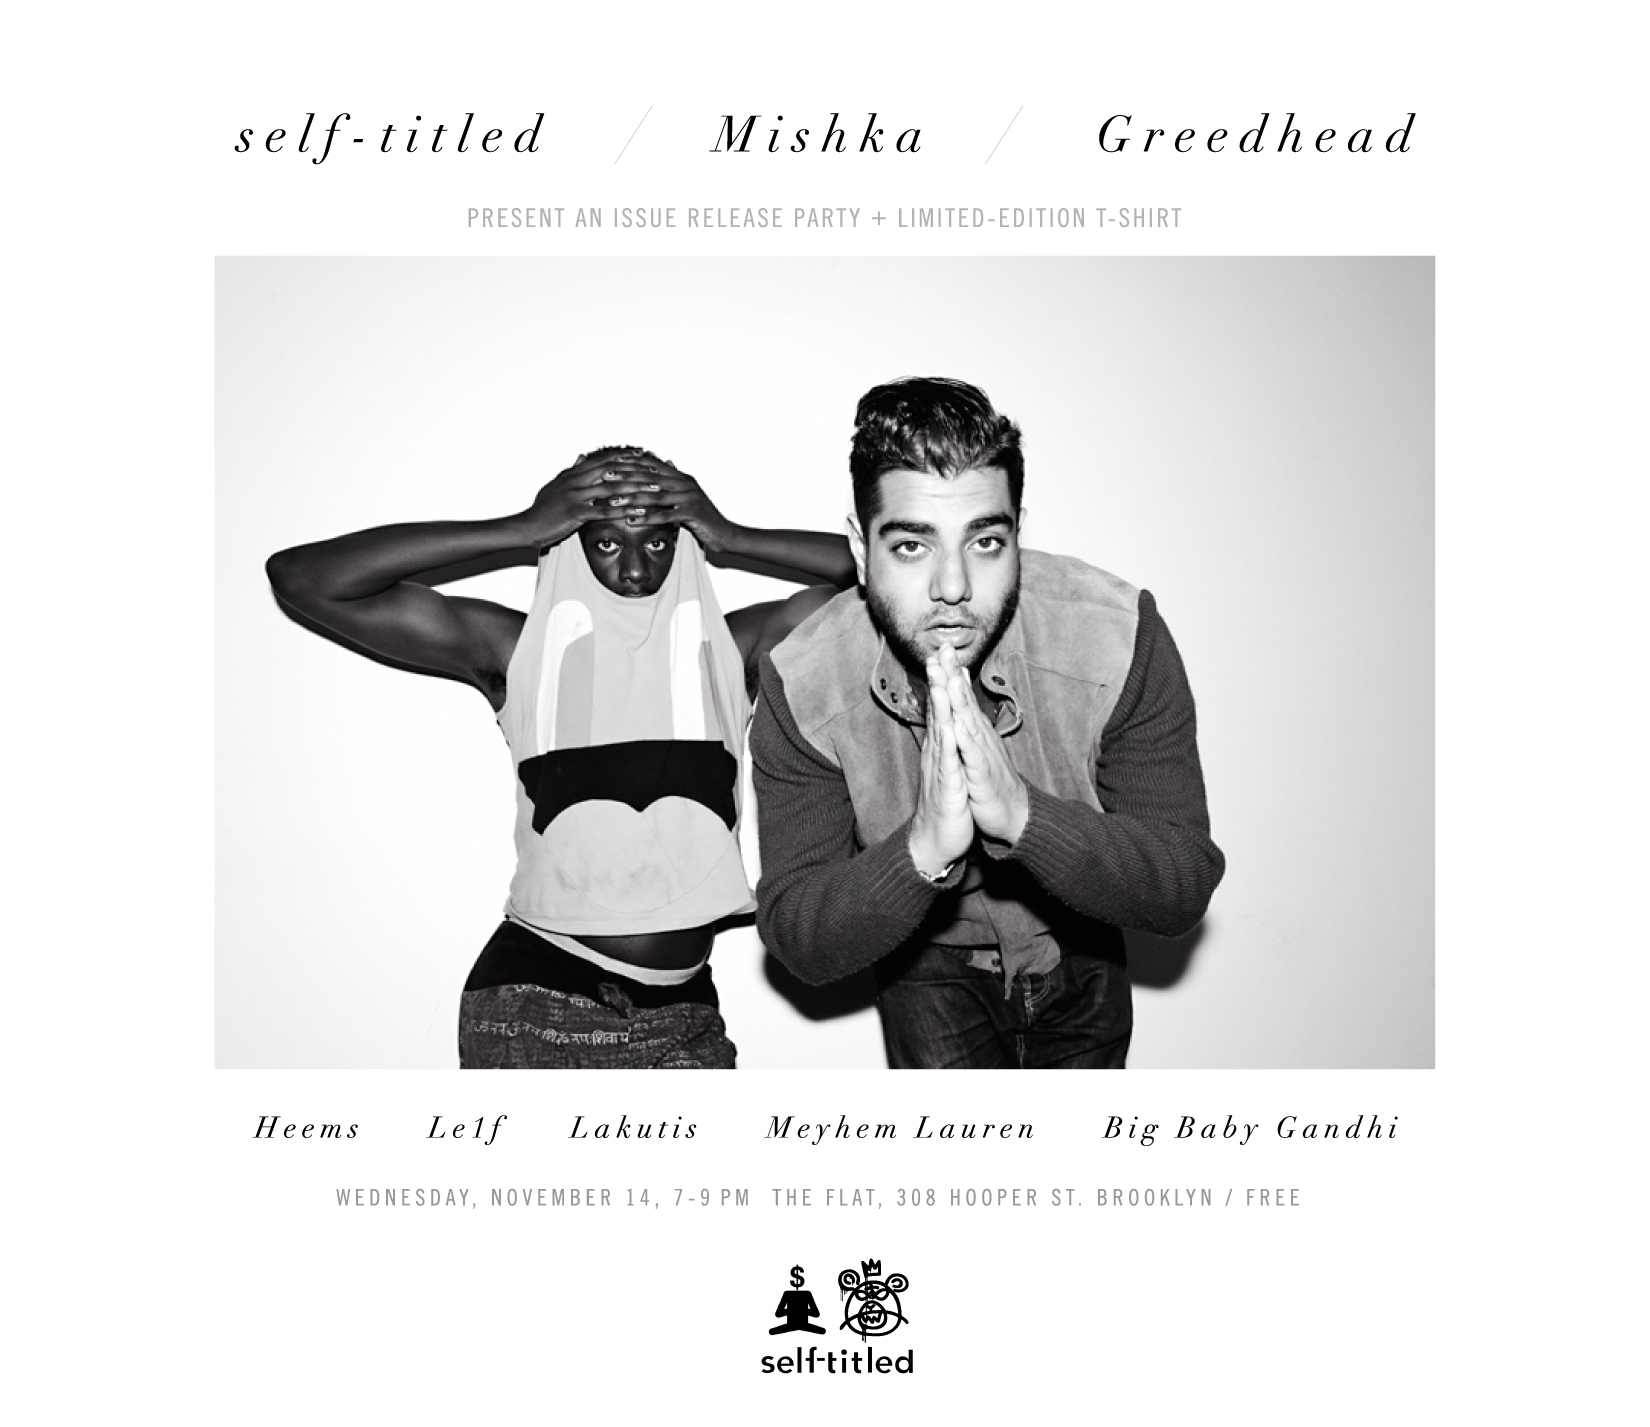 A flyer for the Mishka x Greedhead x self-titled party